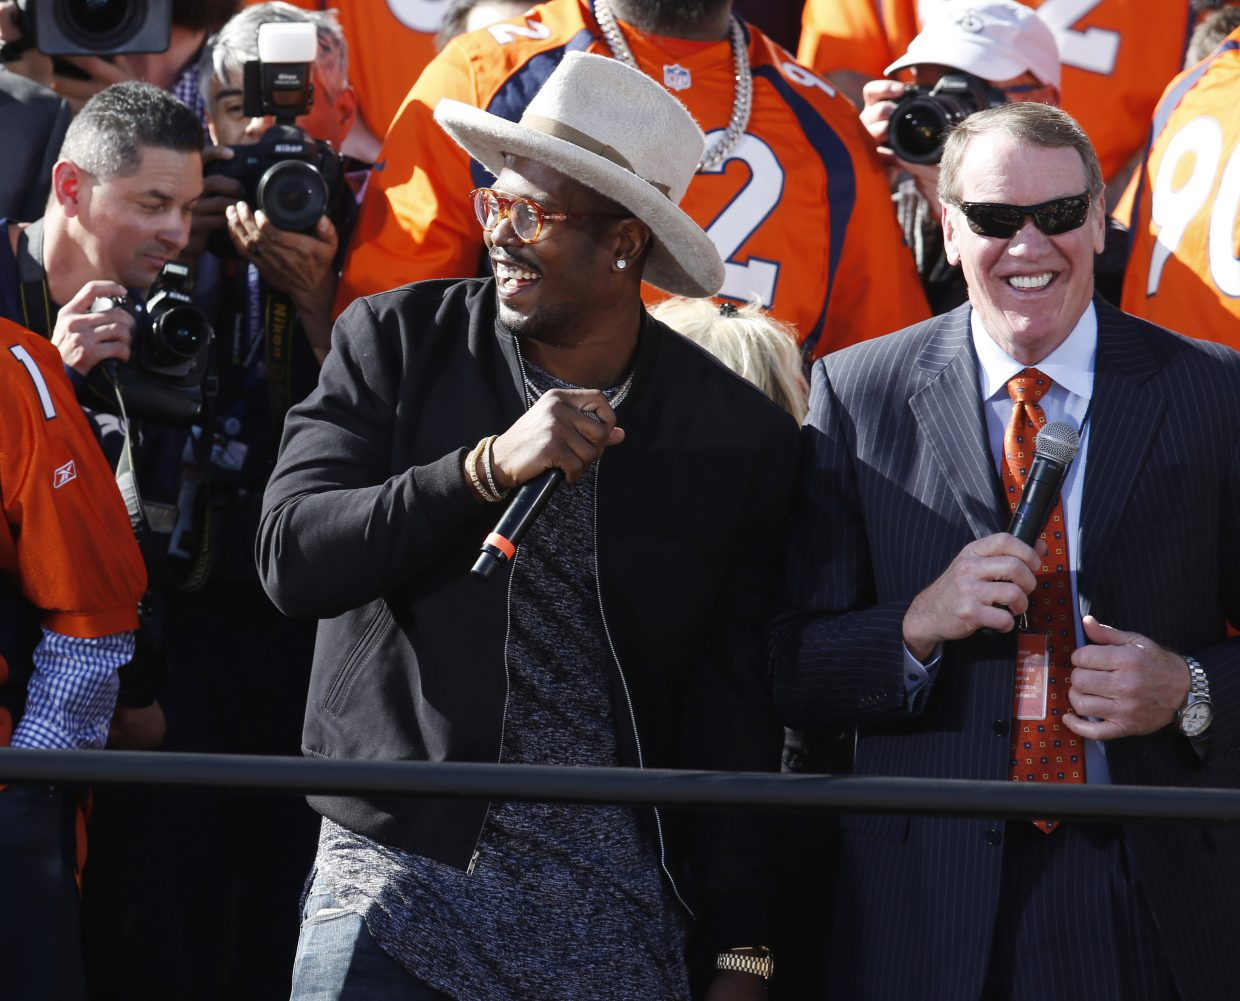 Denver Broncos outside linebacker Von Miller, center, jokes with teammates at a rally following a parade through downtown Tuesday, Feb. 9, 2016 in Denver. Fans crowded into Denver's downtown to salute the Broncos for the team's victory over the Carolina Panthers in Super Bowl 50. (AP Photo/David Zalubowski)